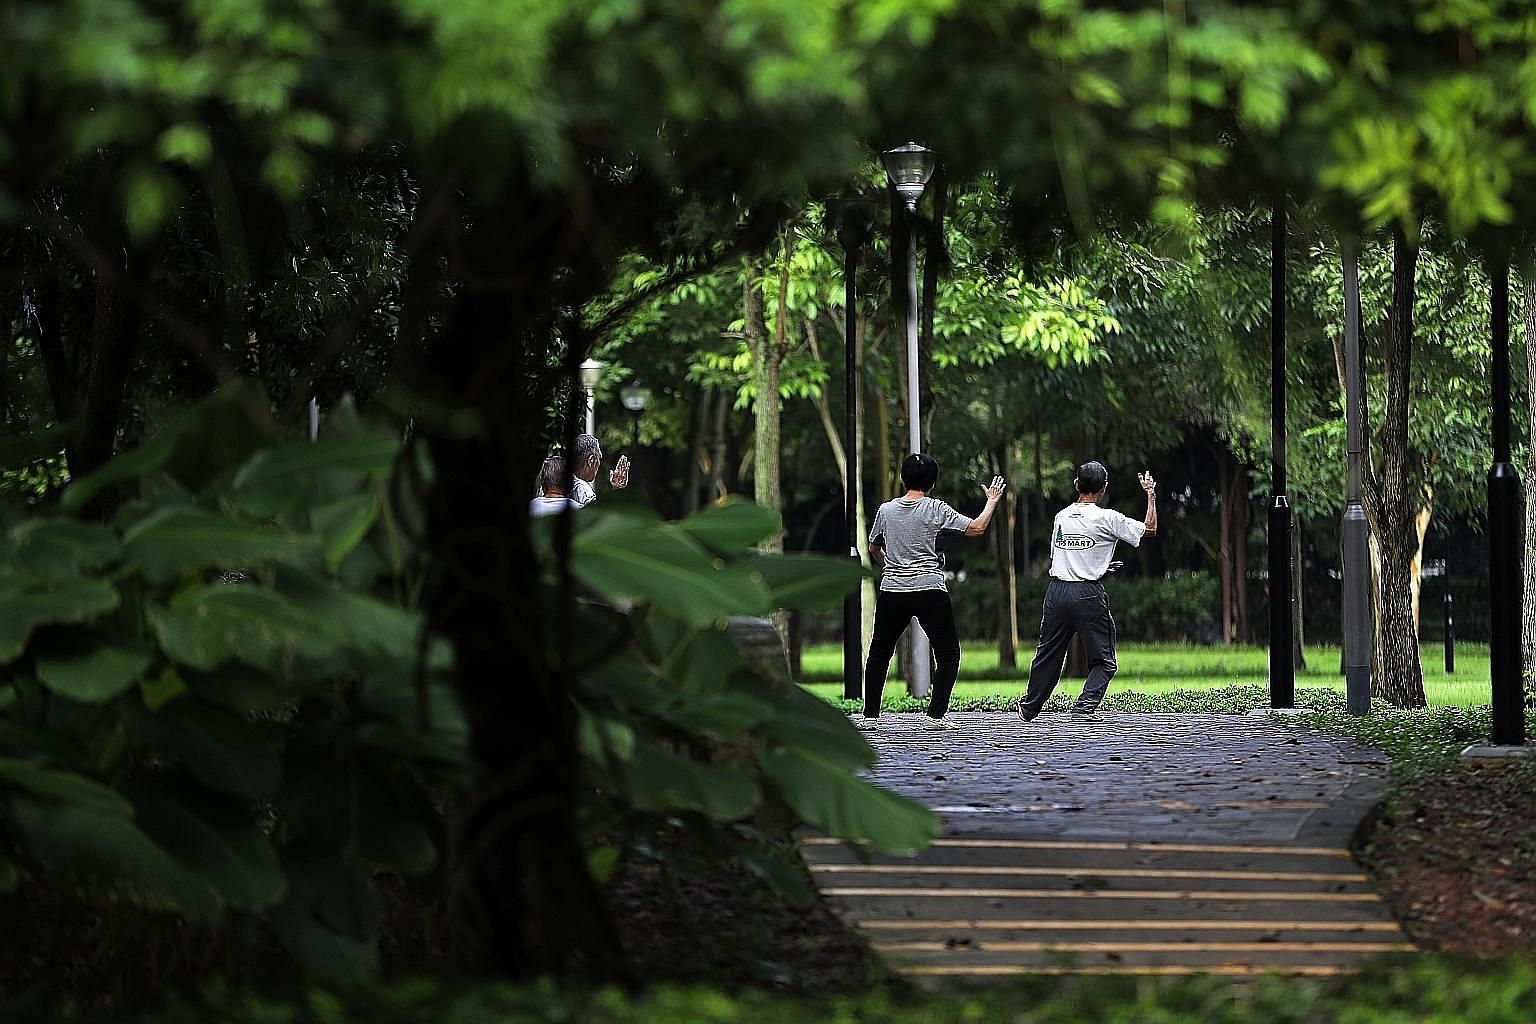 In the health sub-index, Singapore was in 24th spot, up from 29th last year. This was driven by higher scores in insured health expenditure and life expectancy. Singapore ranked 28 overall in the 2019 Global Retirement Index, the same as last year, a